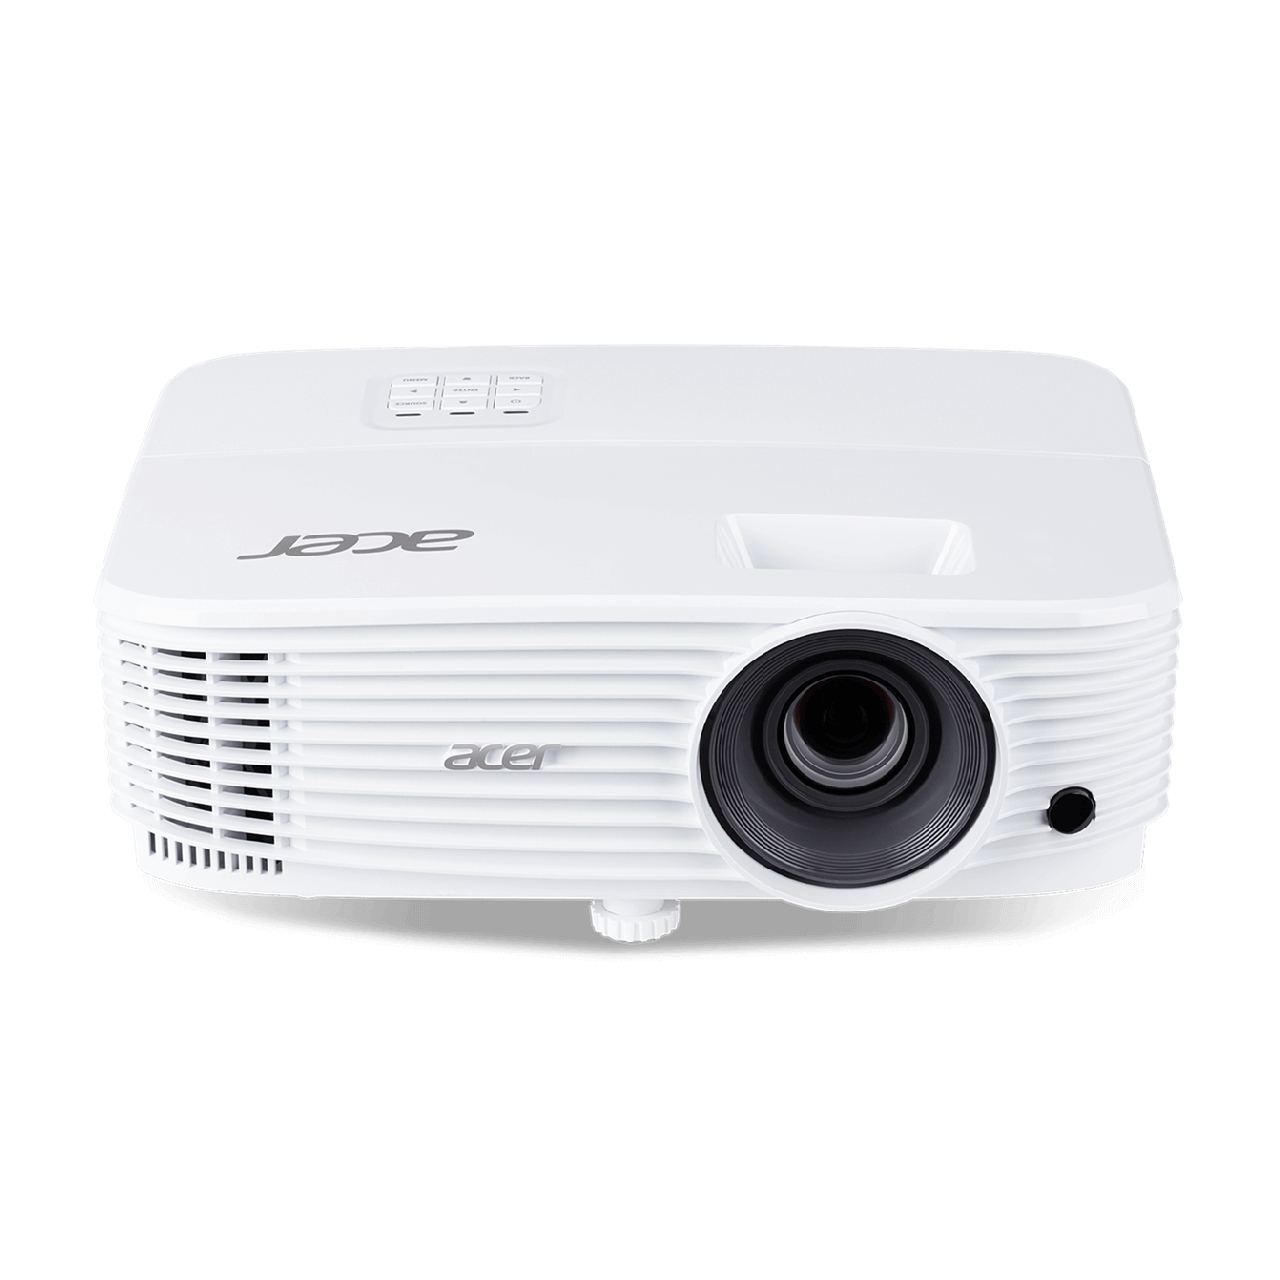 ACER MR.JPM11.001 P1350W PORTABLE PROJECTOR 3700ANSI LUMENS DLP WXGA (1280X800) 3D WHITE DATA